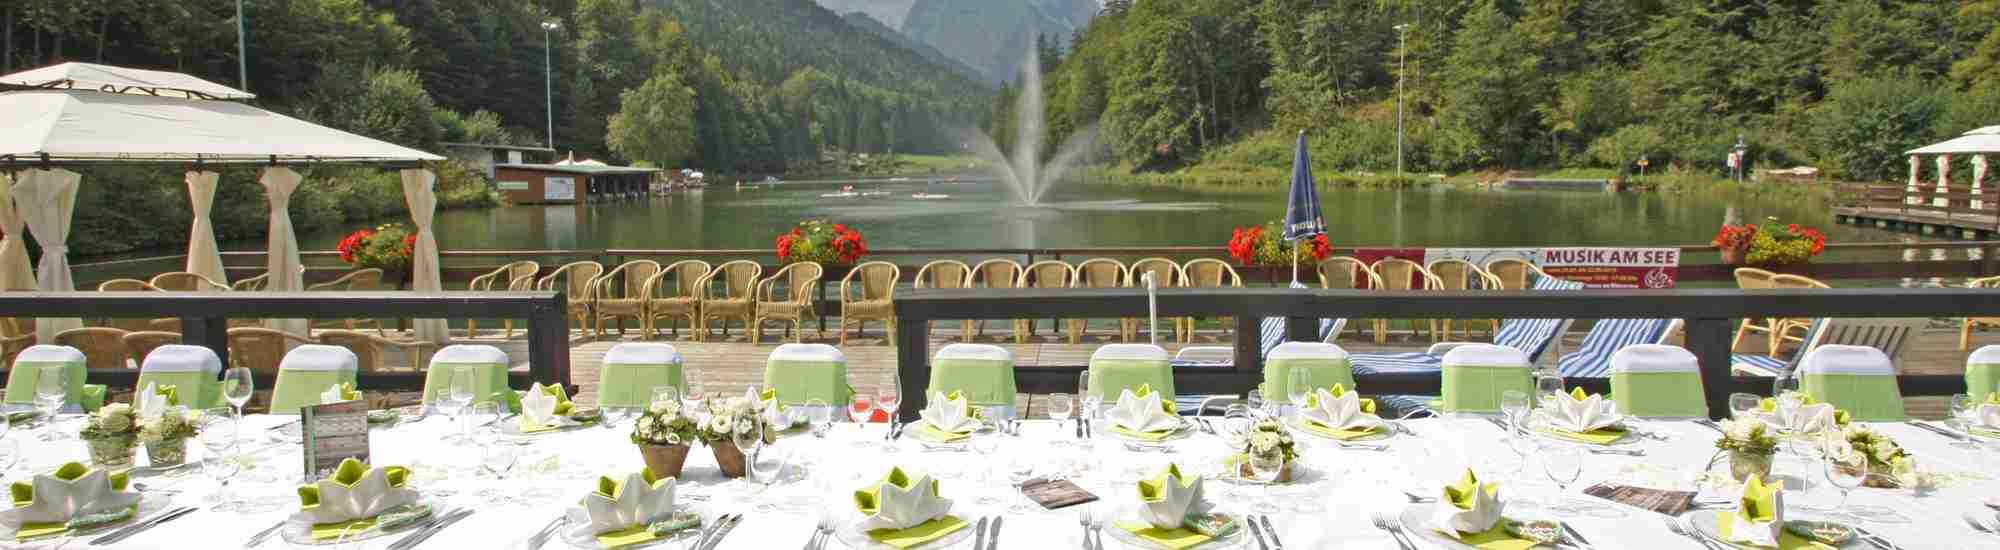 Let the Experience Germany Travel help you with great wedding and honeymoon ideas for your special day